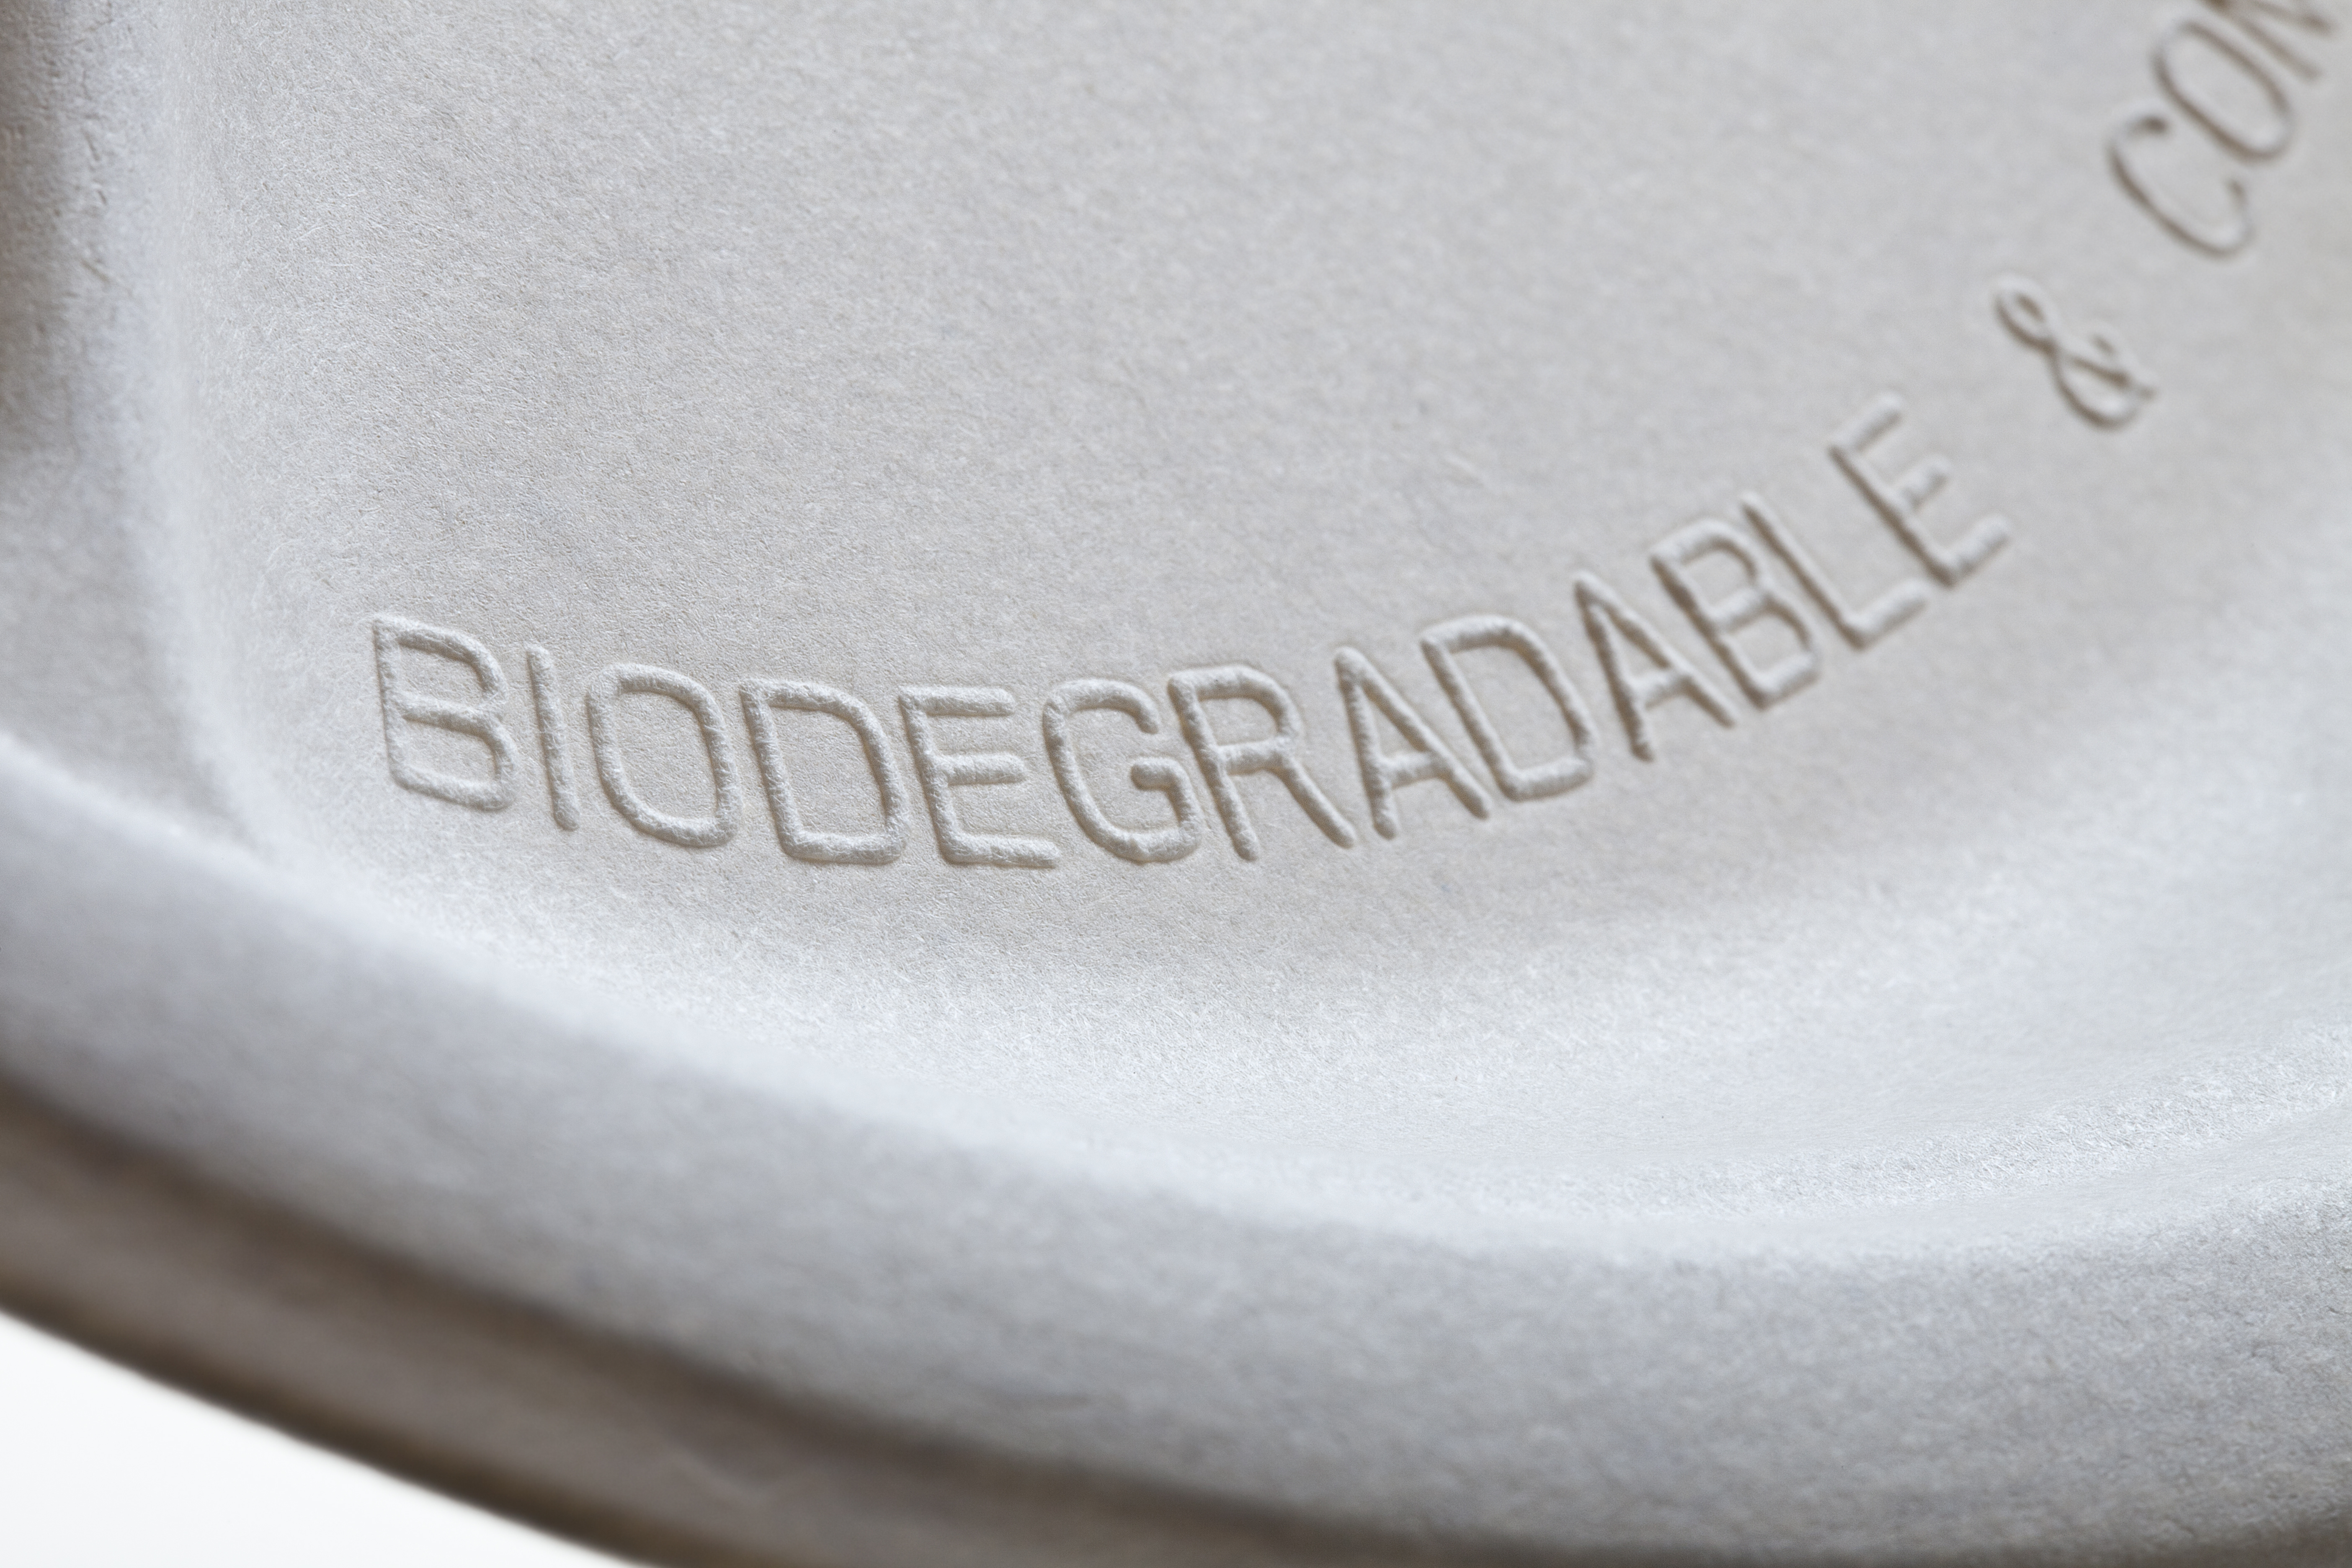 Bio-based, biodegradable packaging for convenience foods